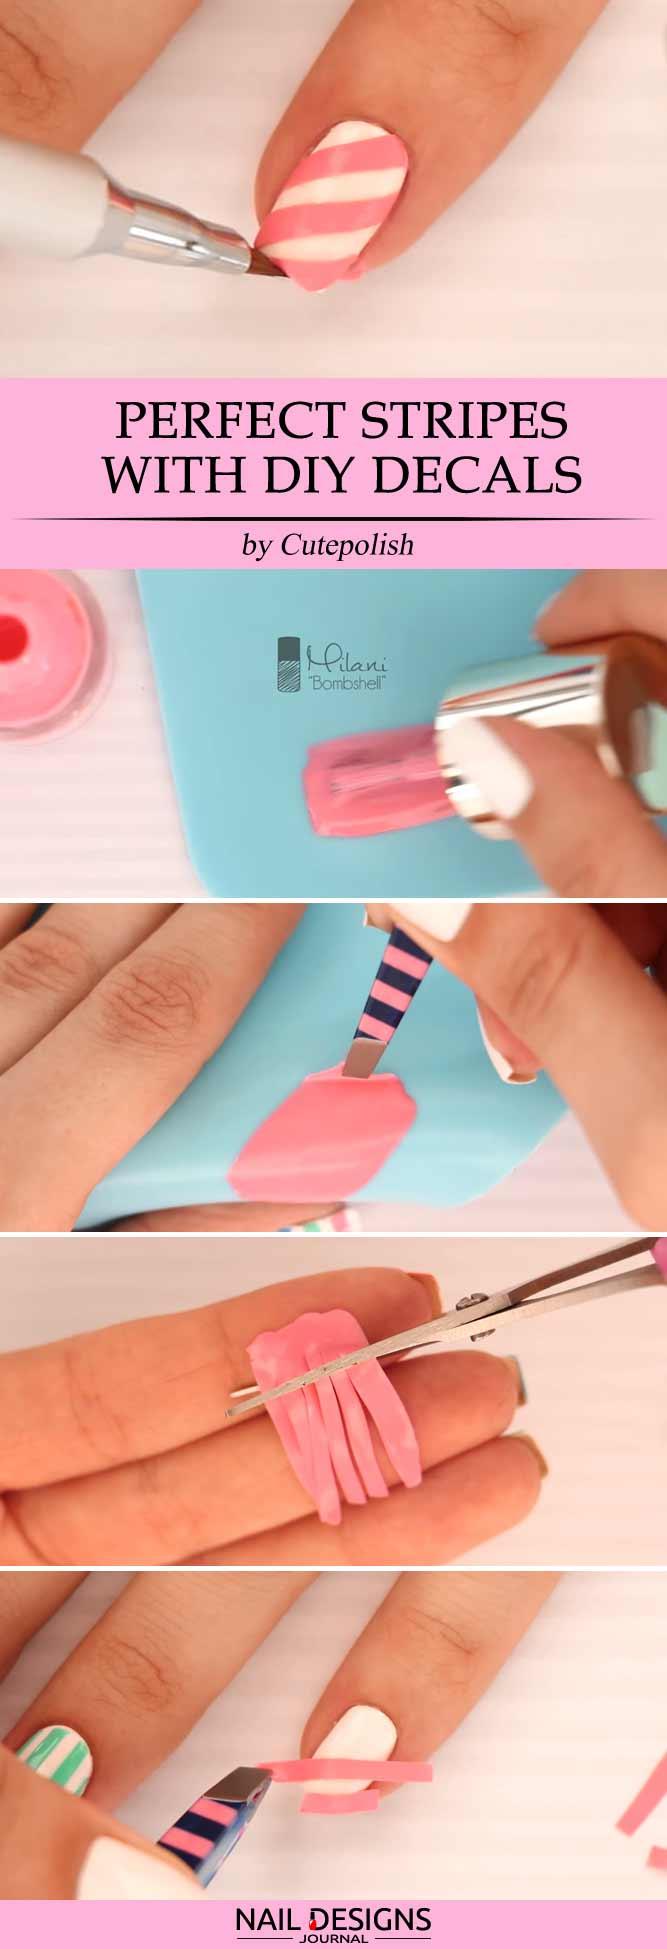 Perfect Stripes With DIY Decals